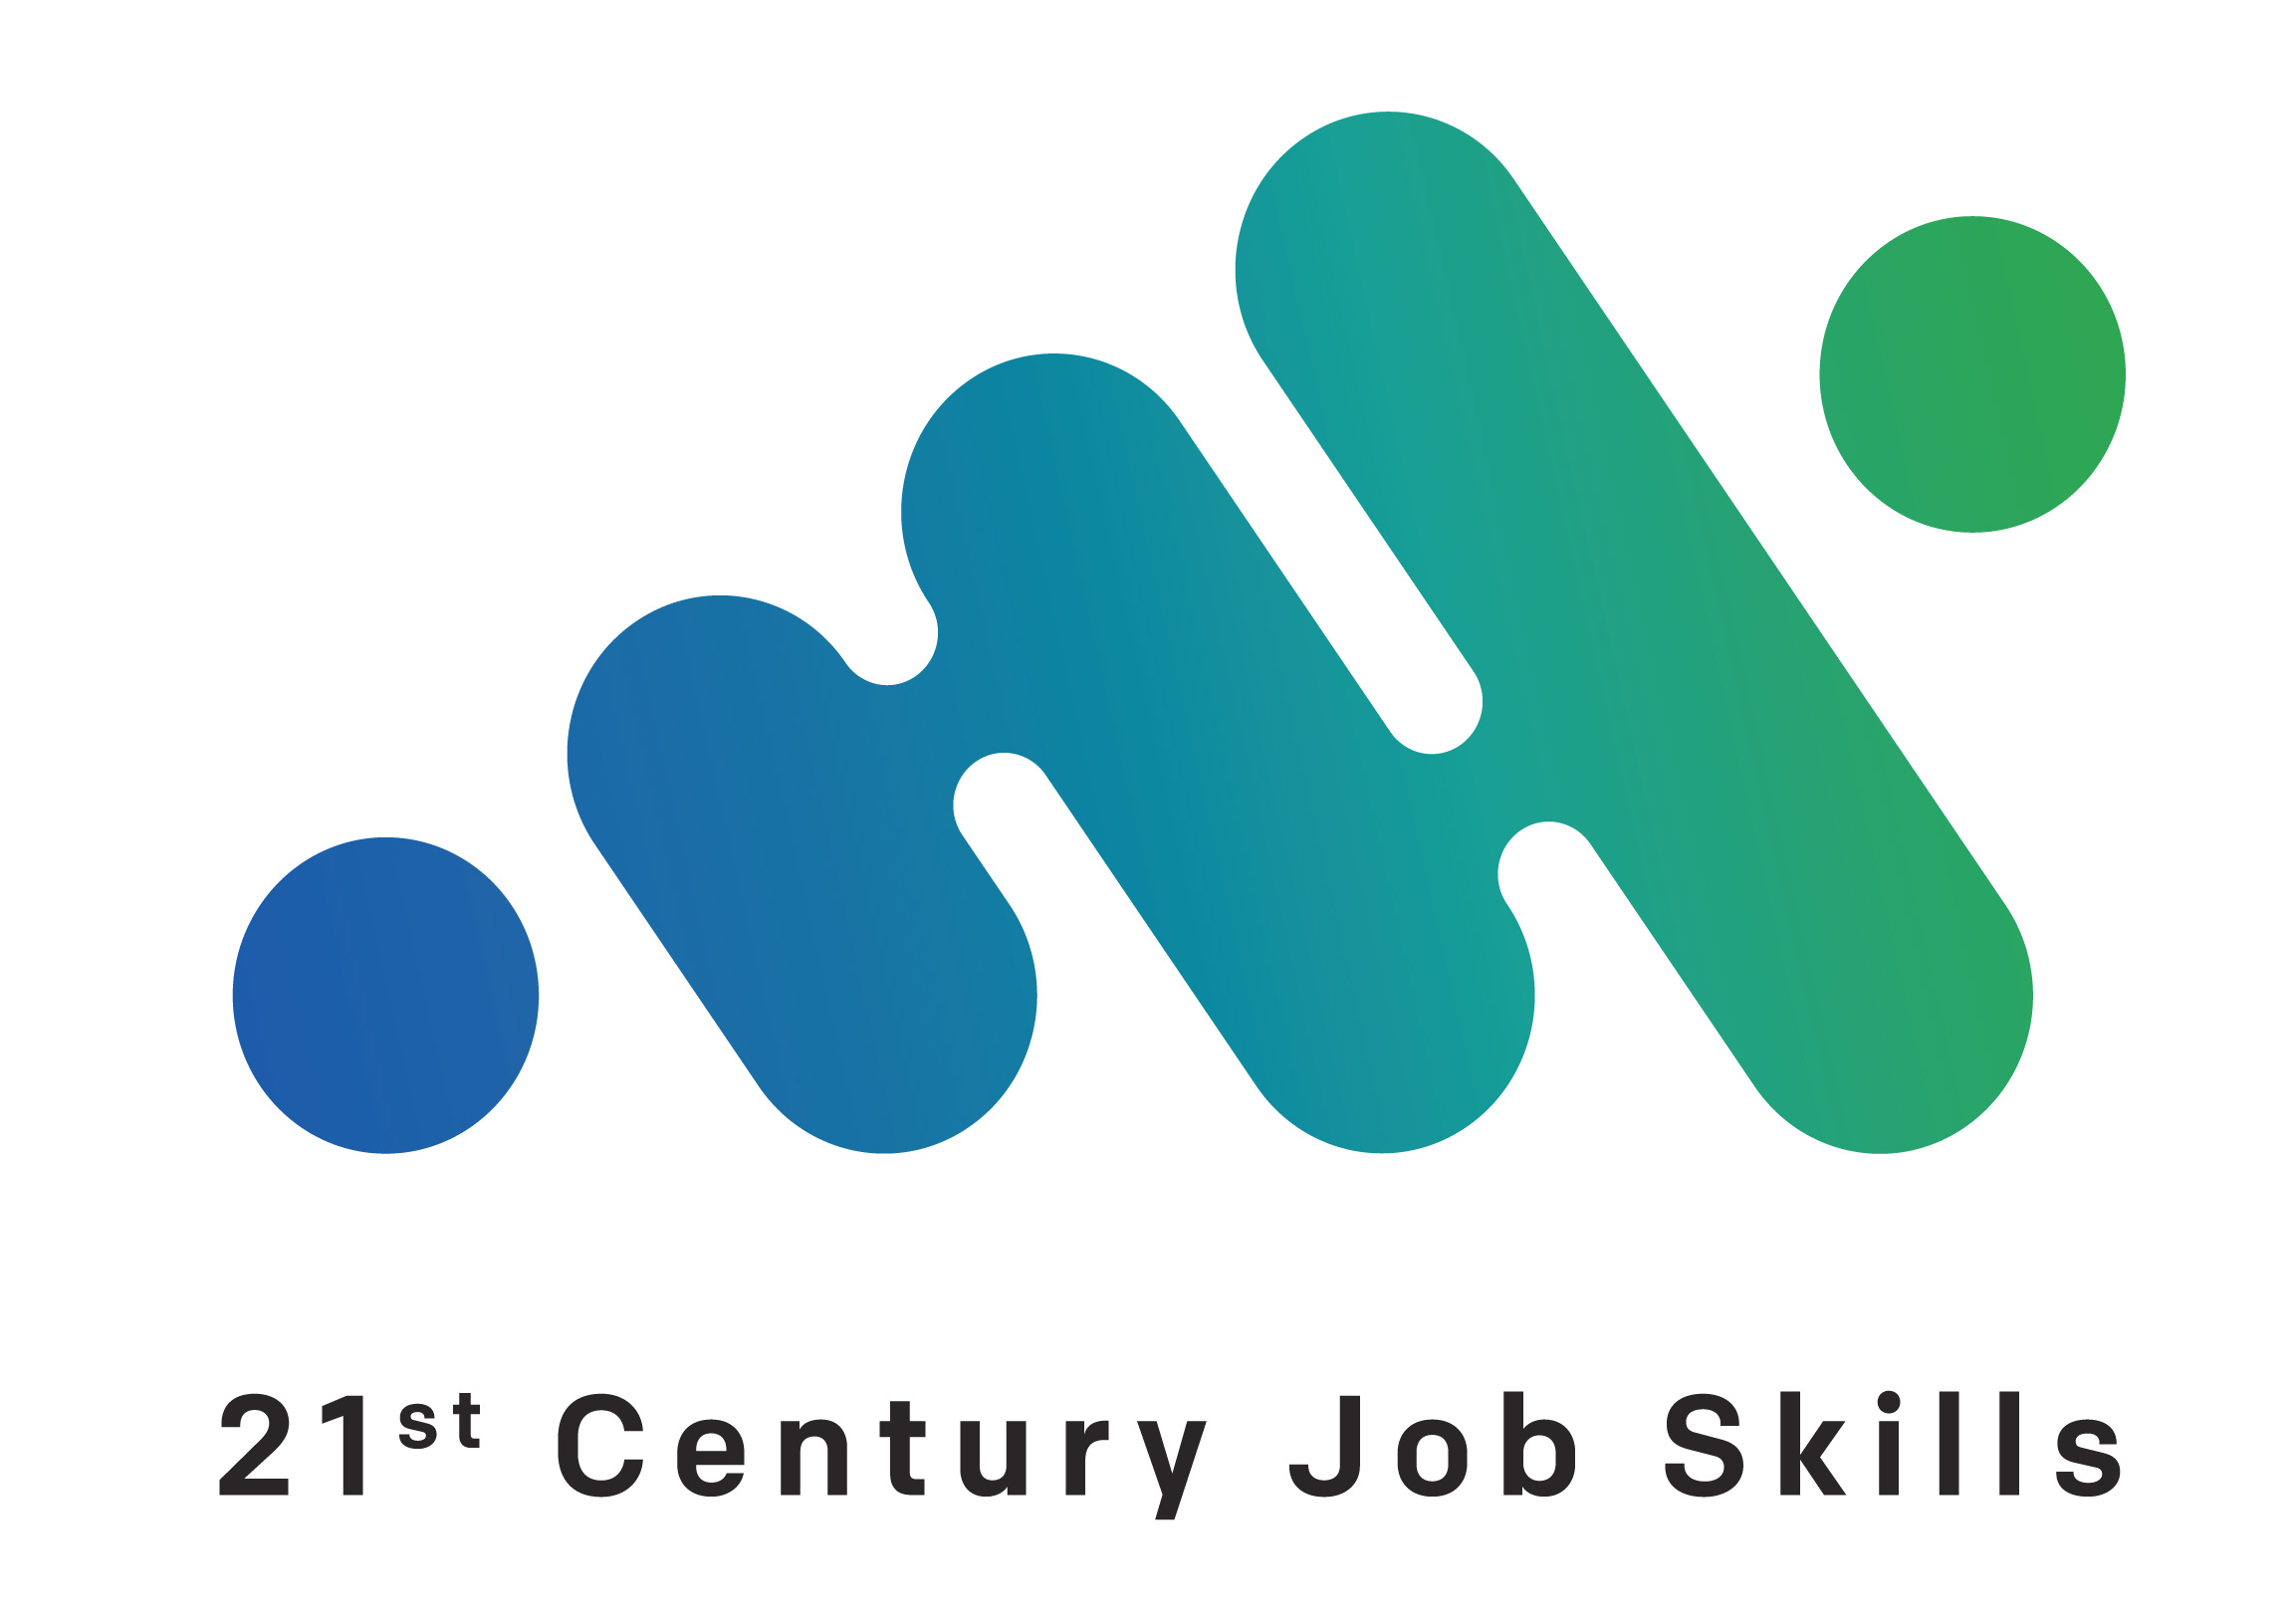 Launch of World's First Online Course Platform Dedicated to Soft Skills